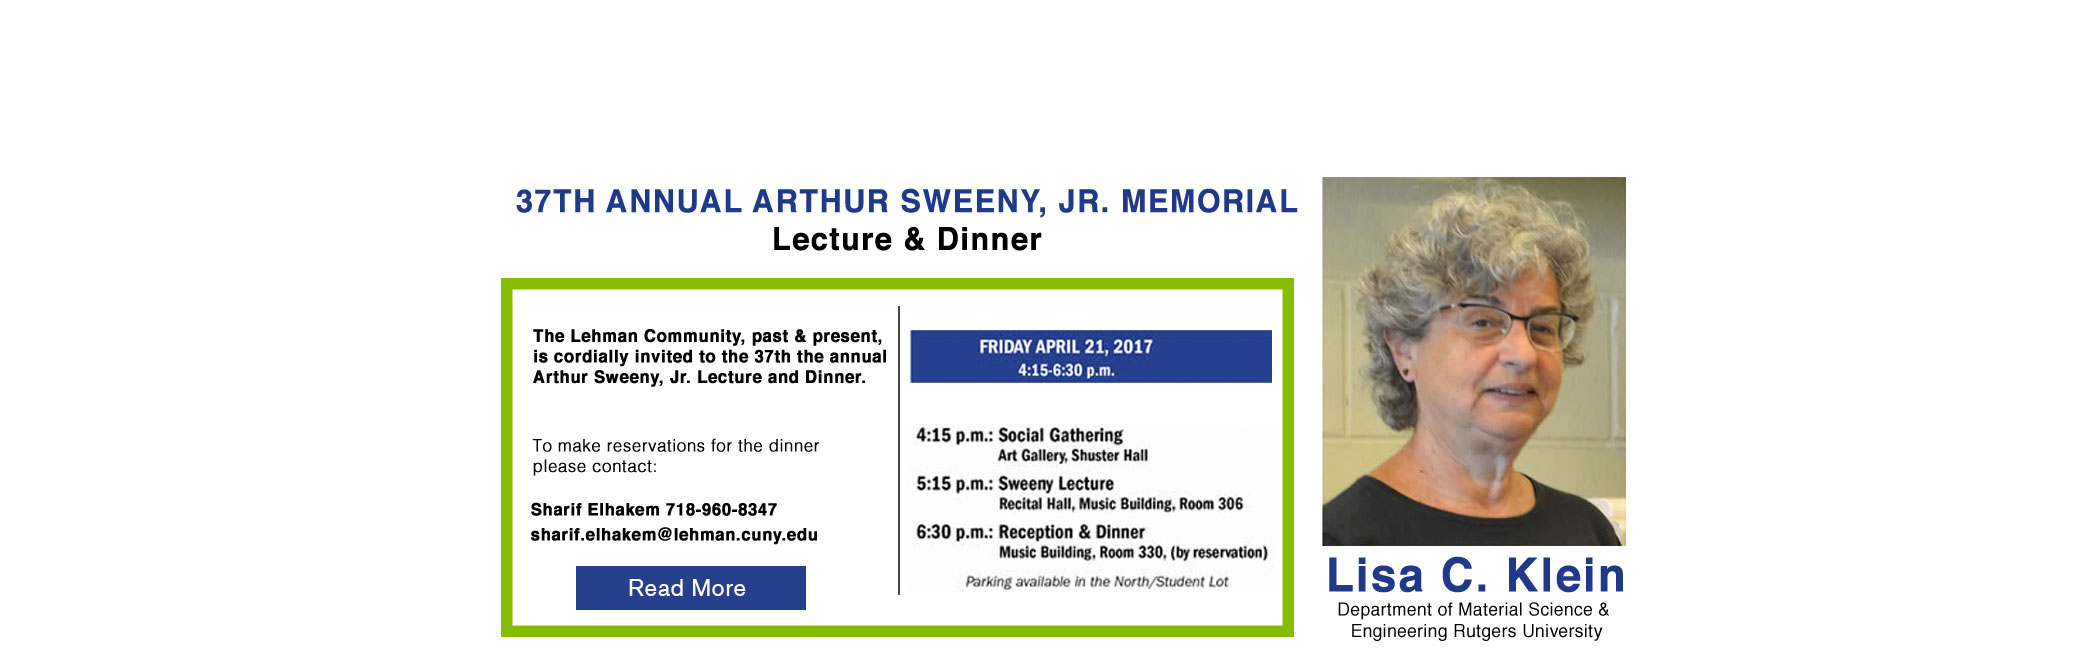 37th Annual Arthur Sweeny, Jr. Memorial Lecture & Dinner